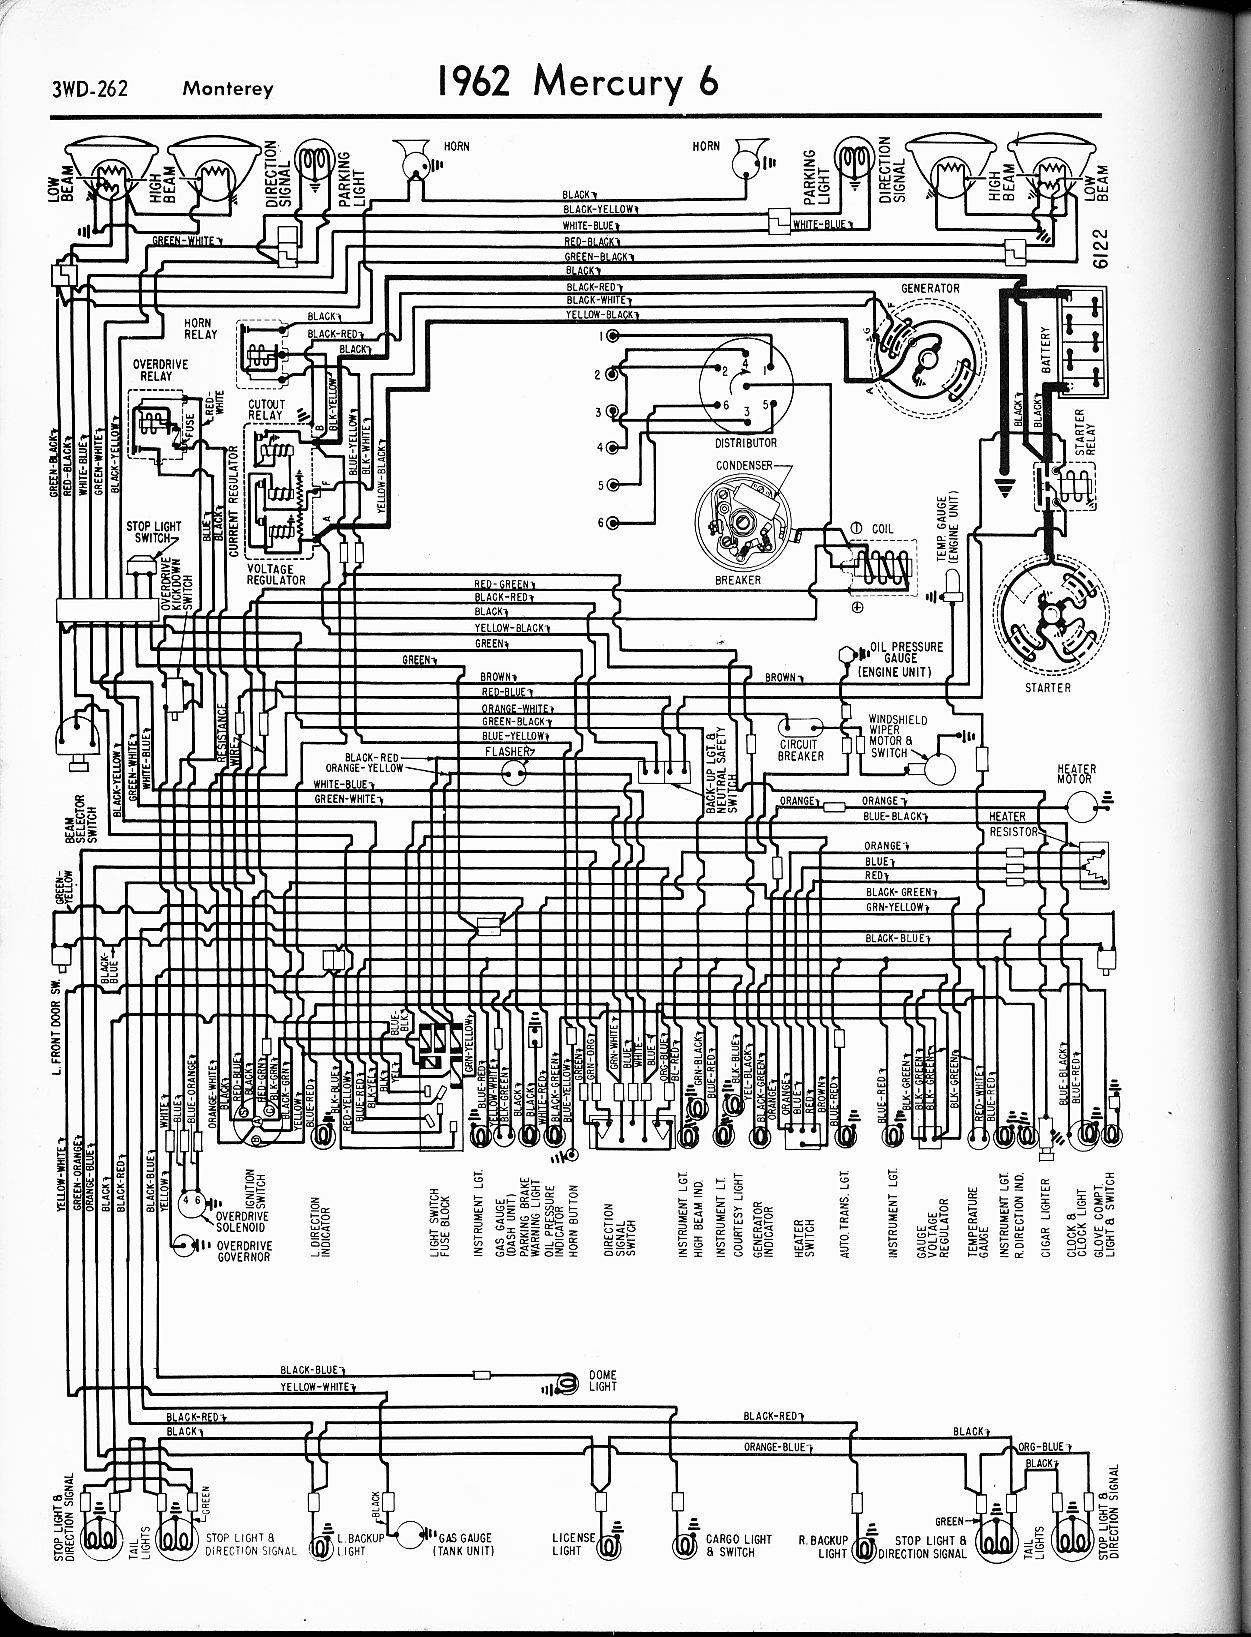 hight resolution of wire diagram for 1966 mercury cougar wiring diagrams konsult 1966 buick riviera 1966 mercury wiring diagram